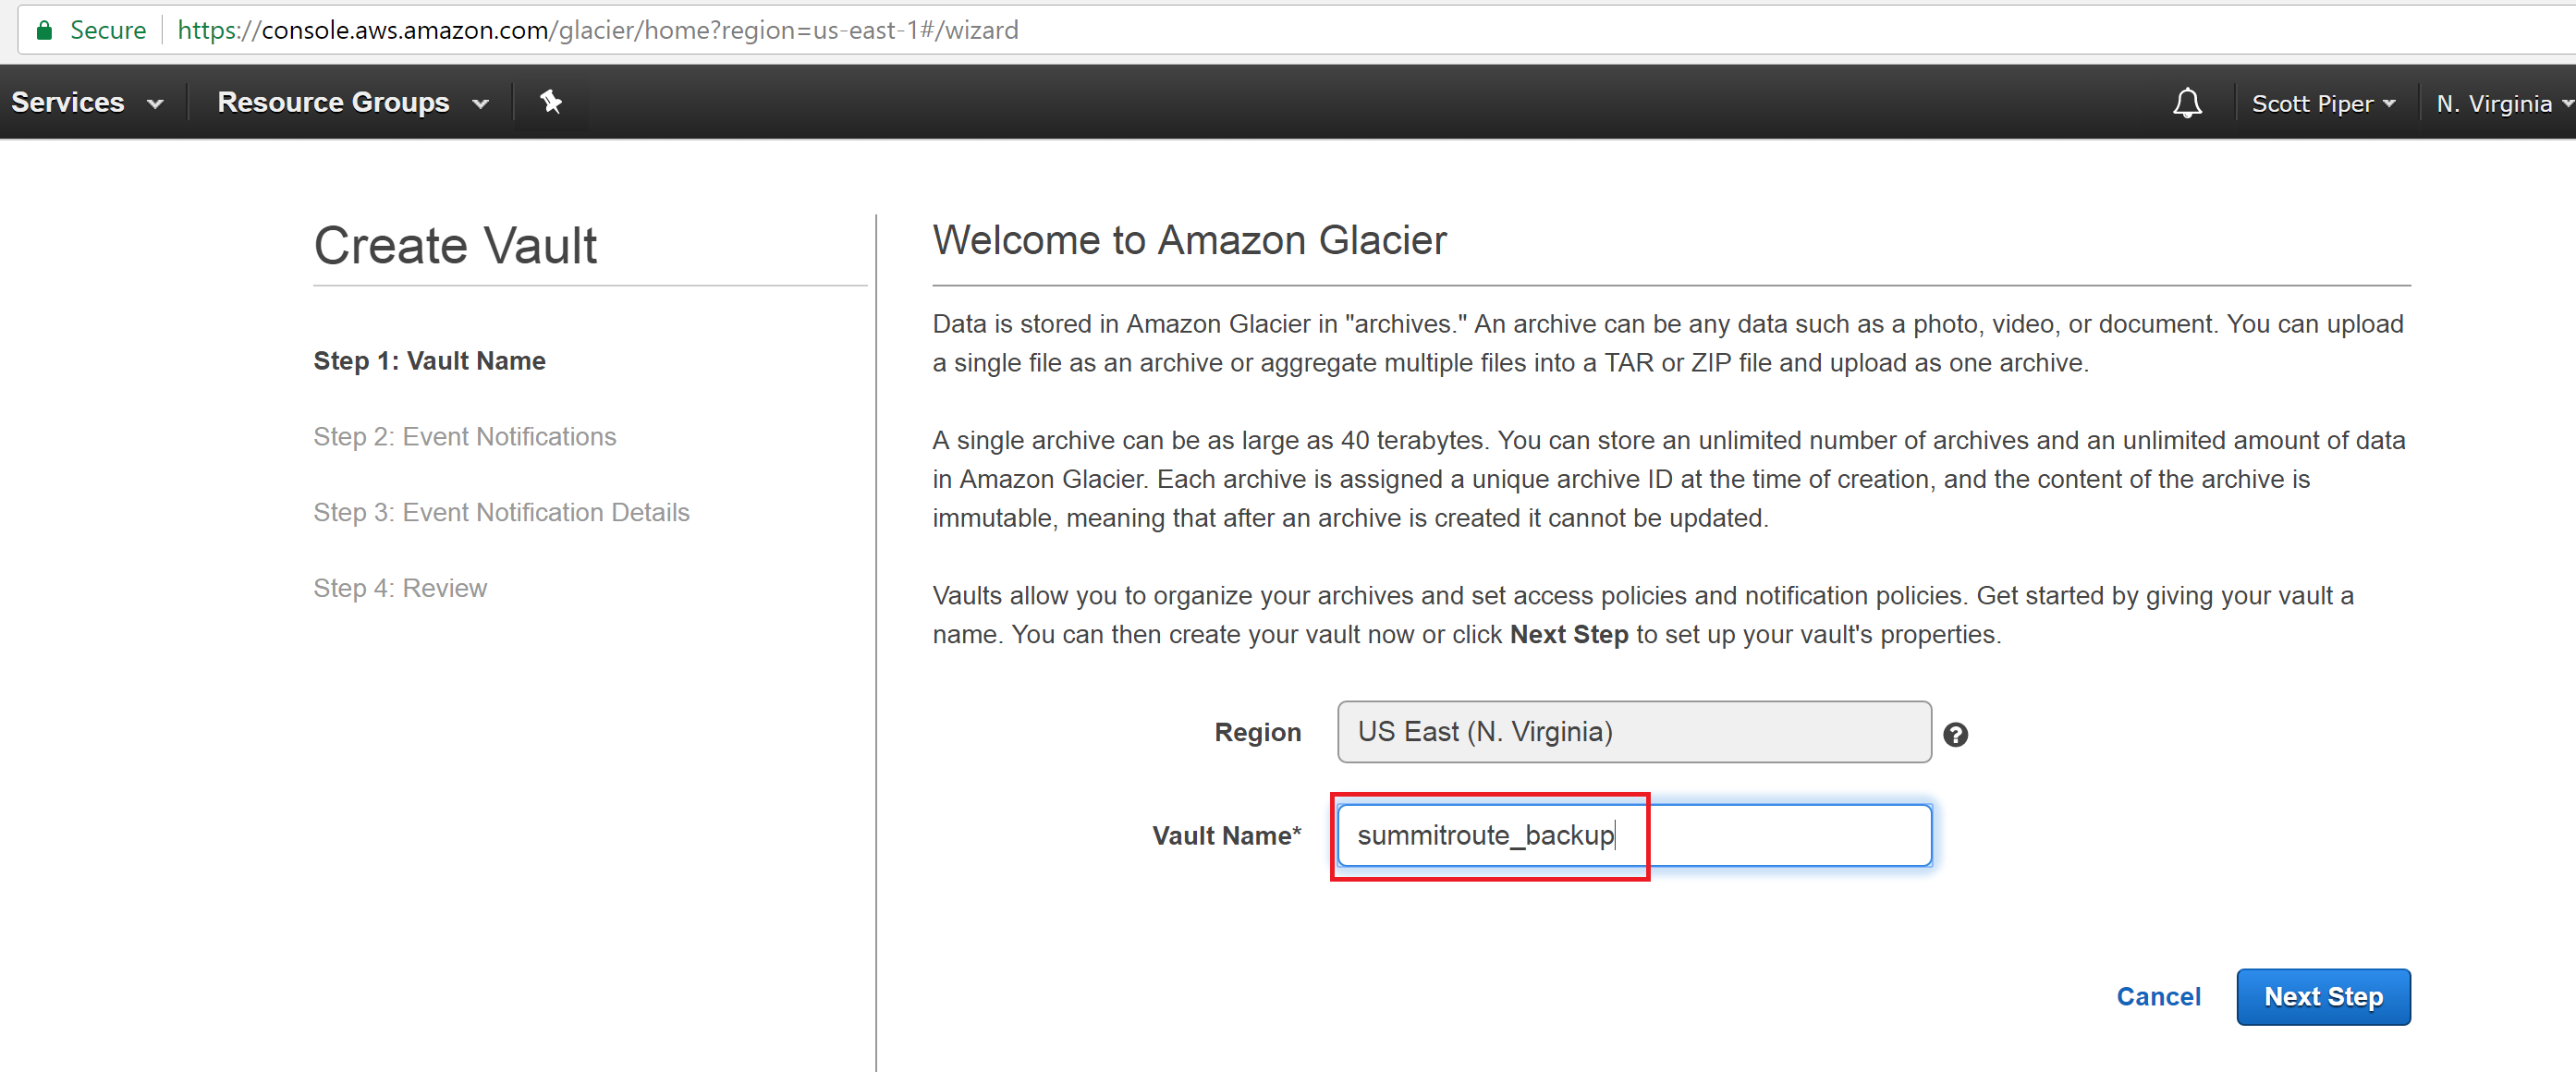 Summit Route - Using AWS for backups